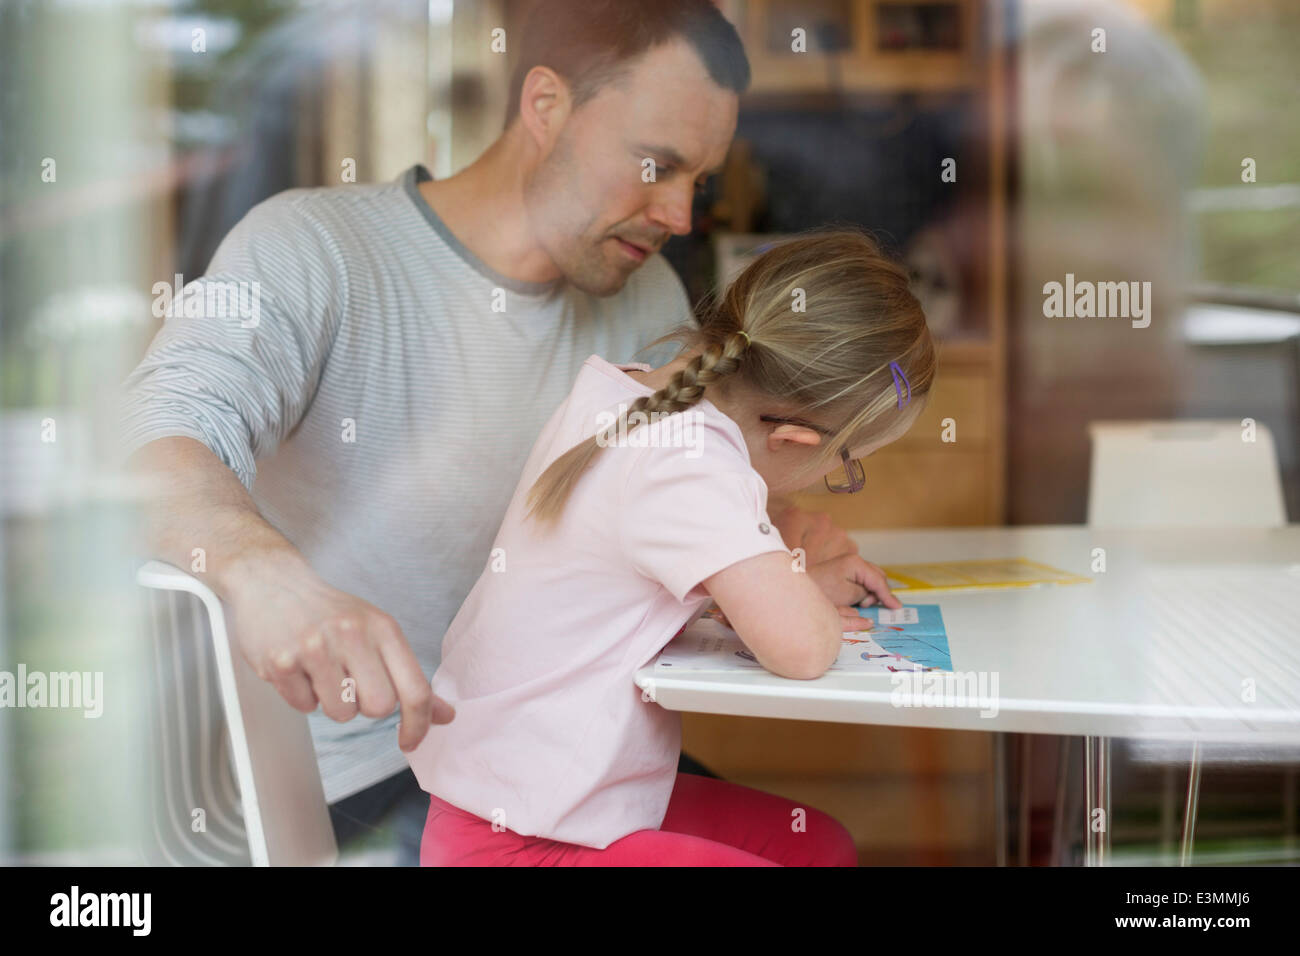 Father assisting handicapped girl in studies at table - Stock Image